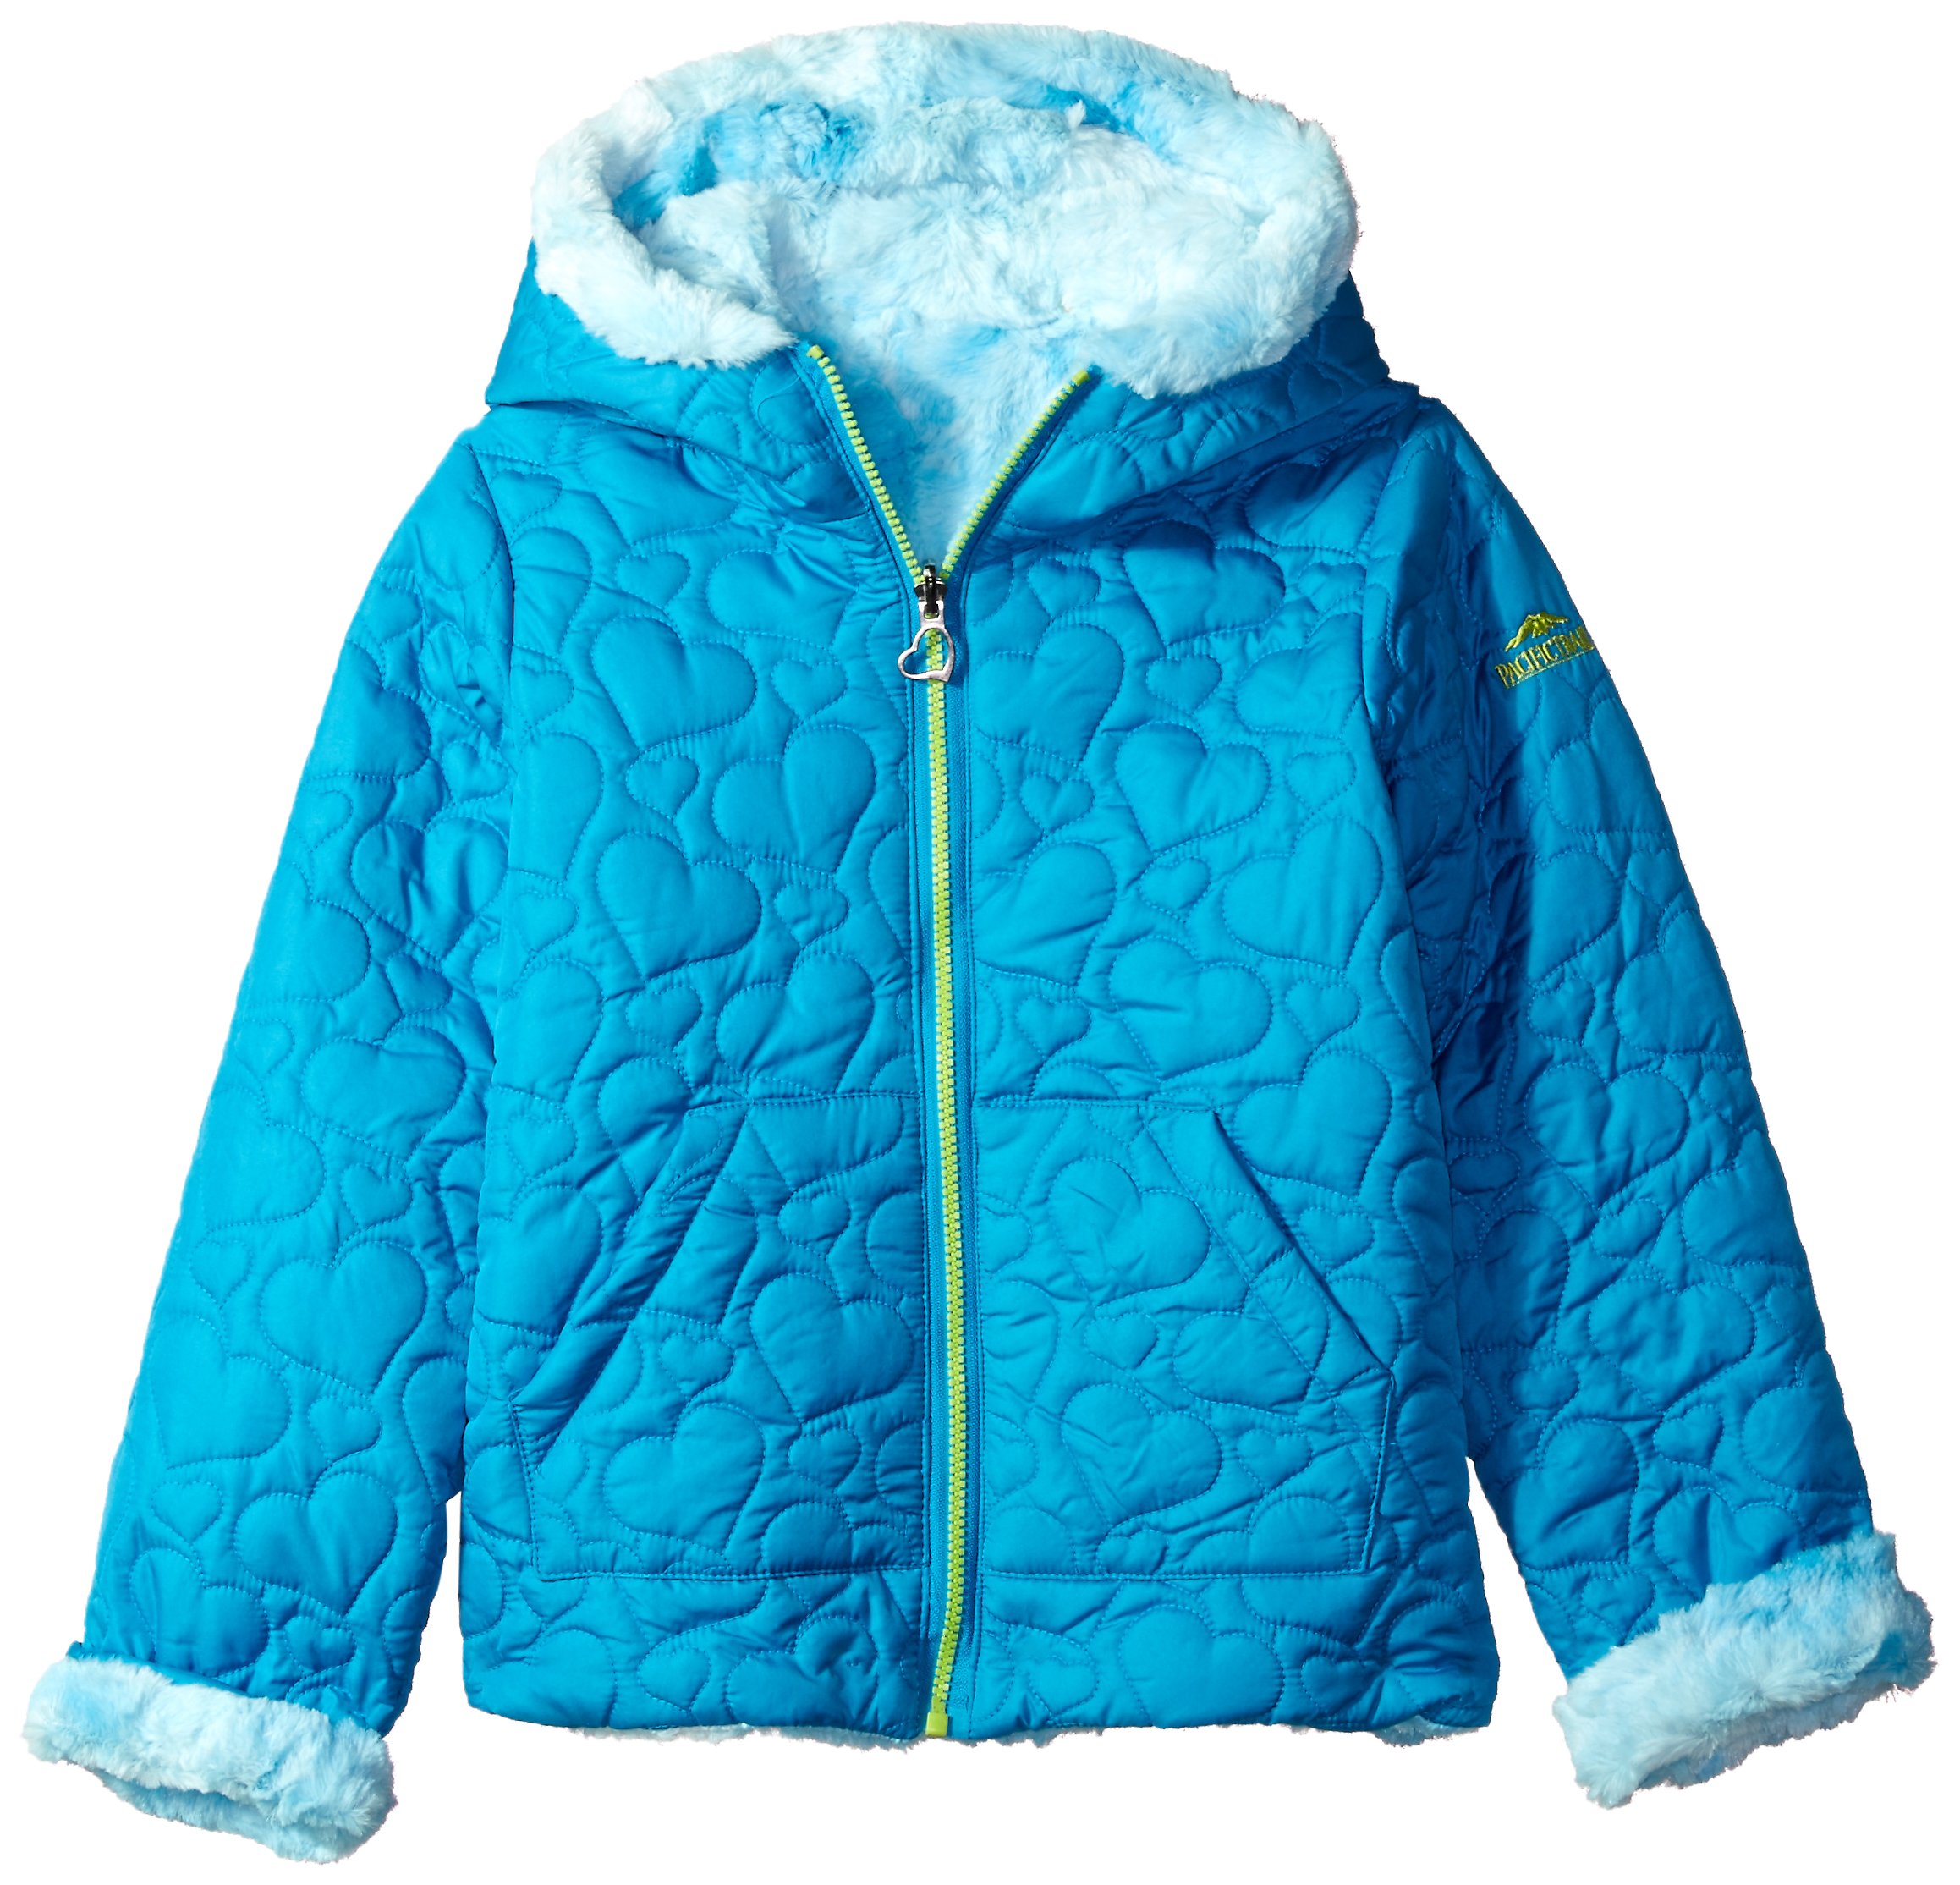 Pacific Trail Little Girls' Quilted Jacket Reversible to Tie-Dye Faux Fur, Turquoise, 4 by Pacific Trail